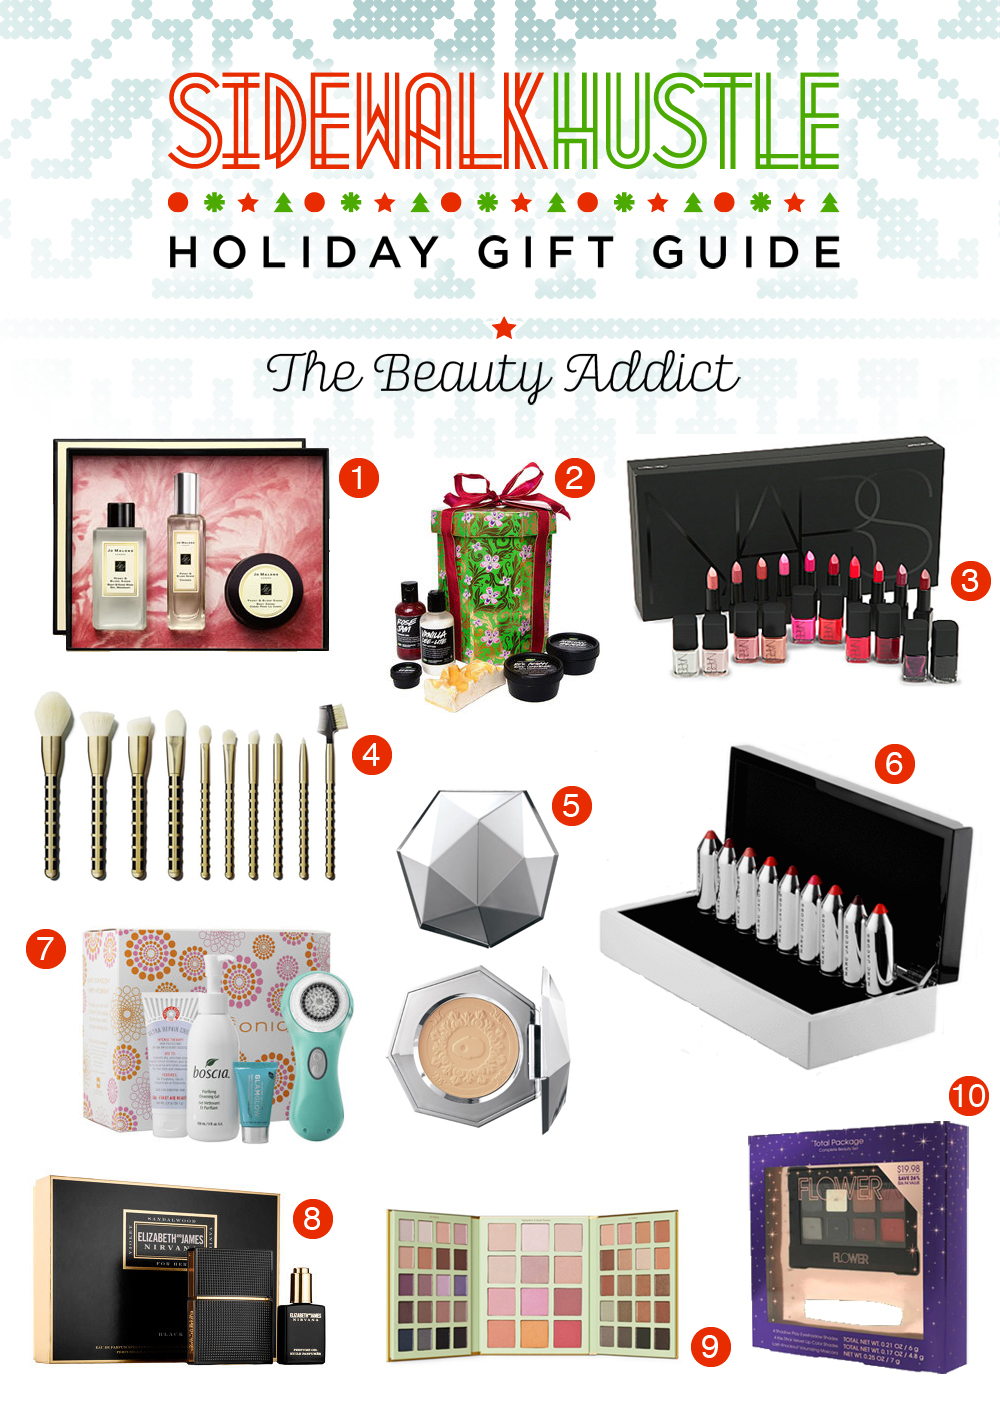 Beauty Addict Gift Guide 2014